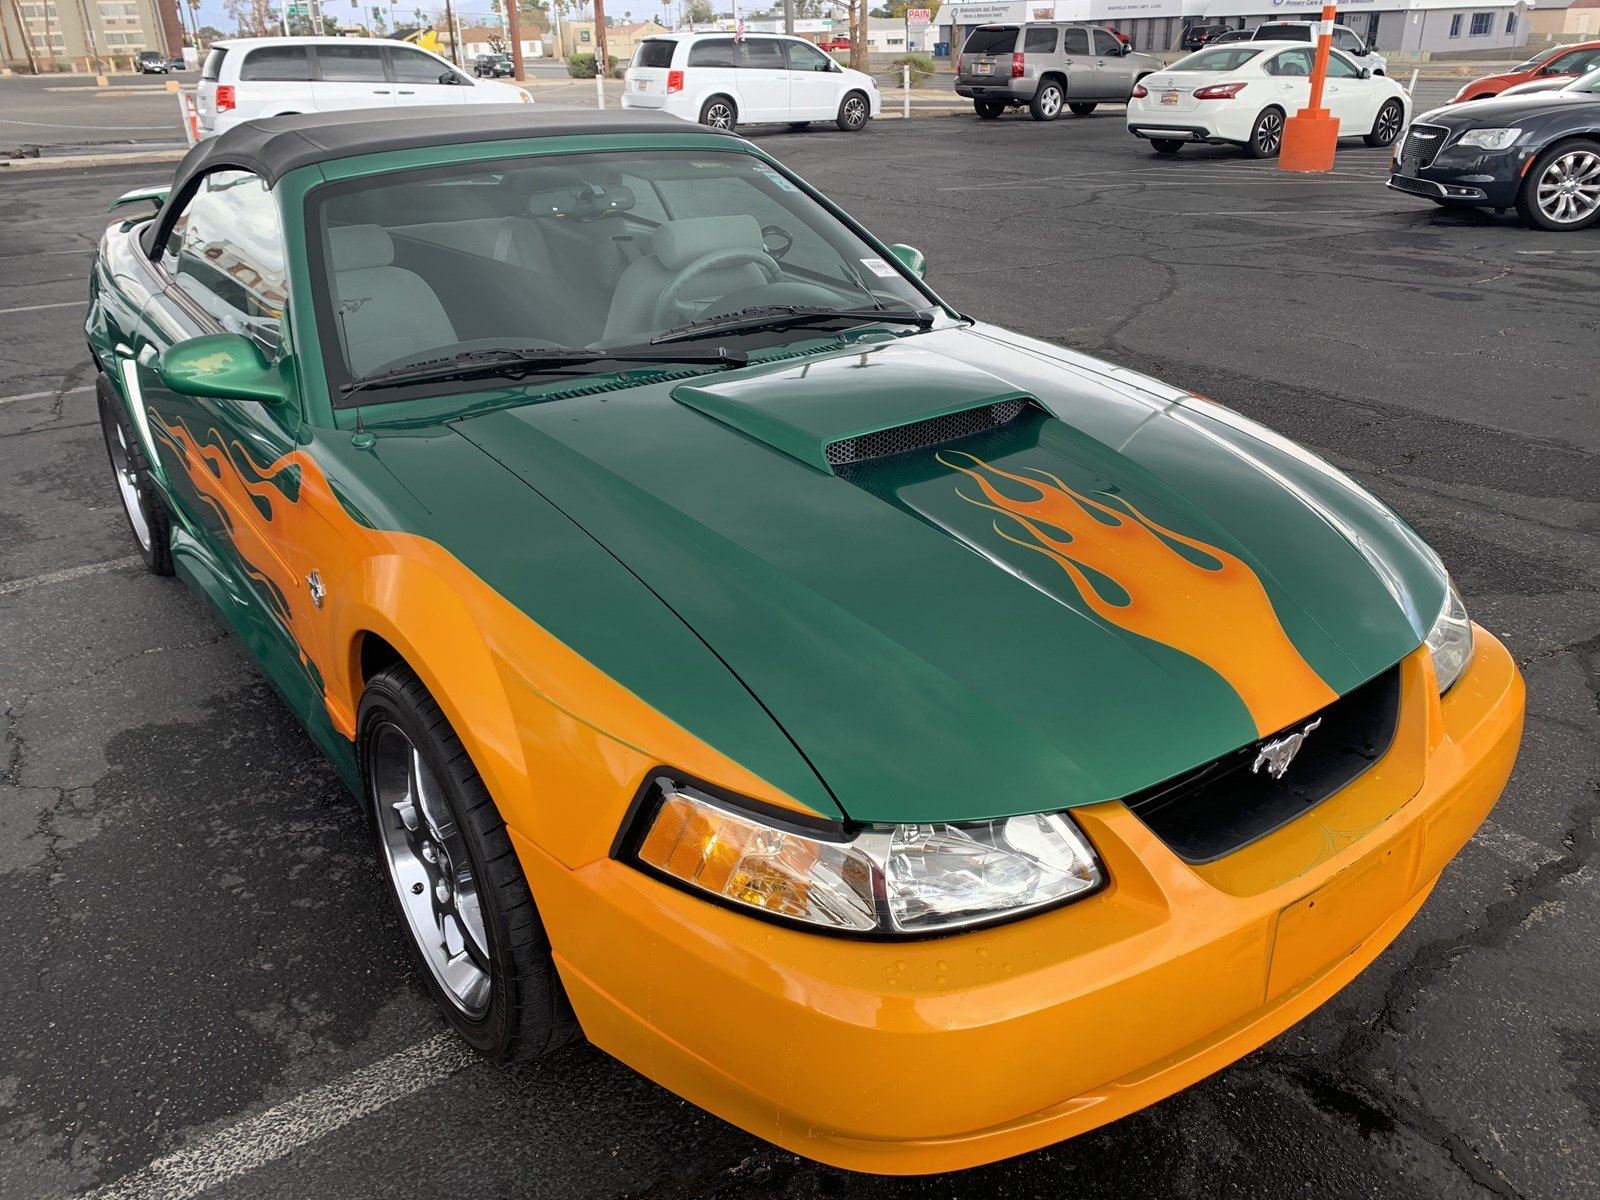 1999 Ford Mustang 2DR CONV in Las Vegas, NV